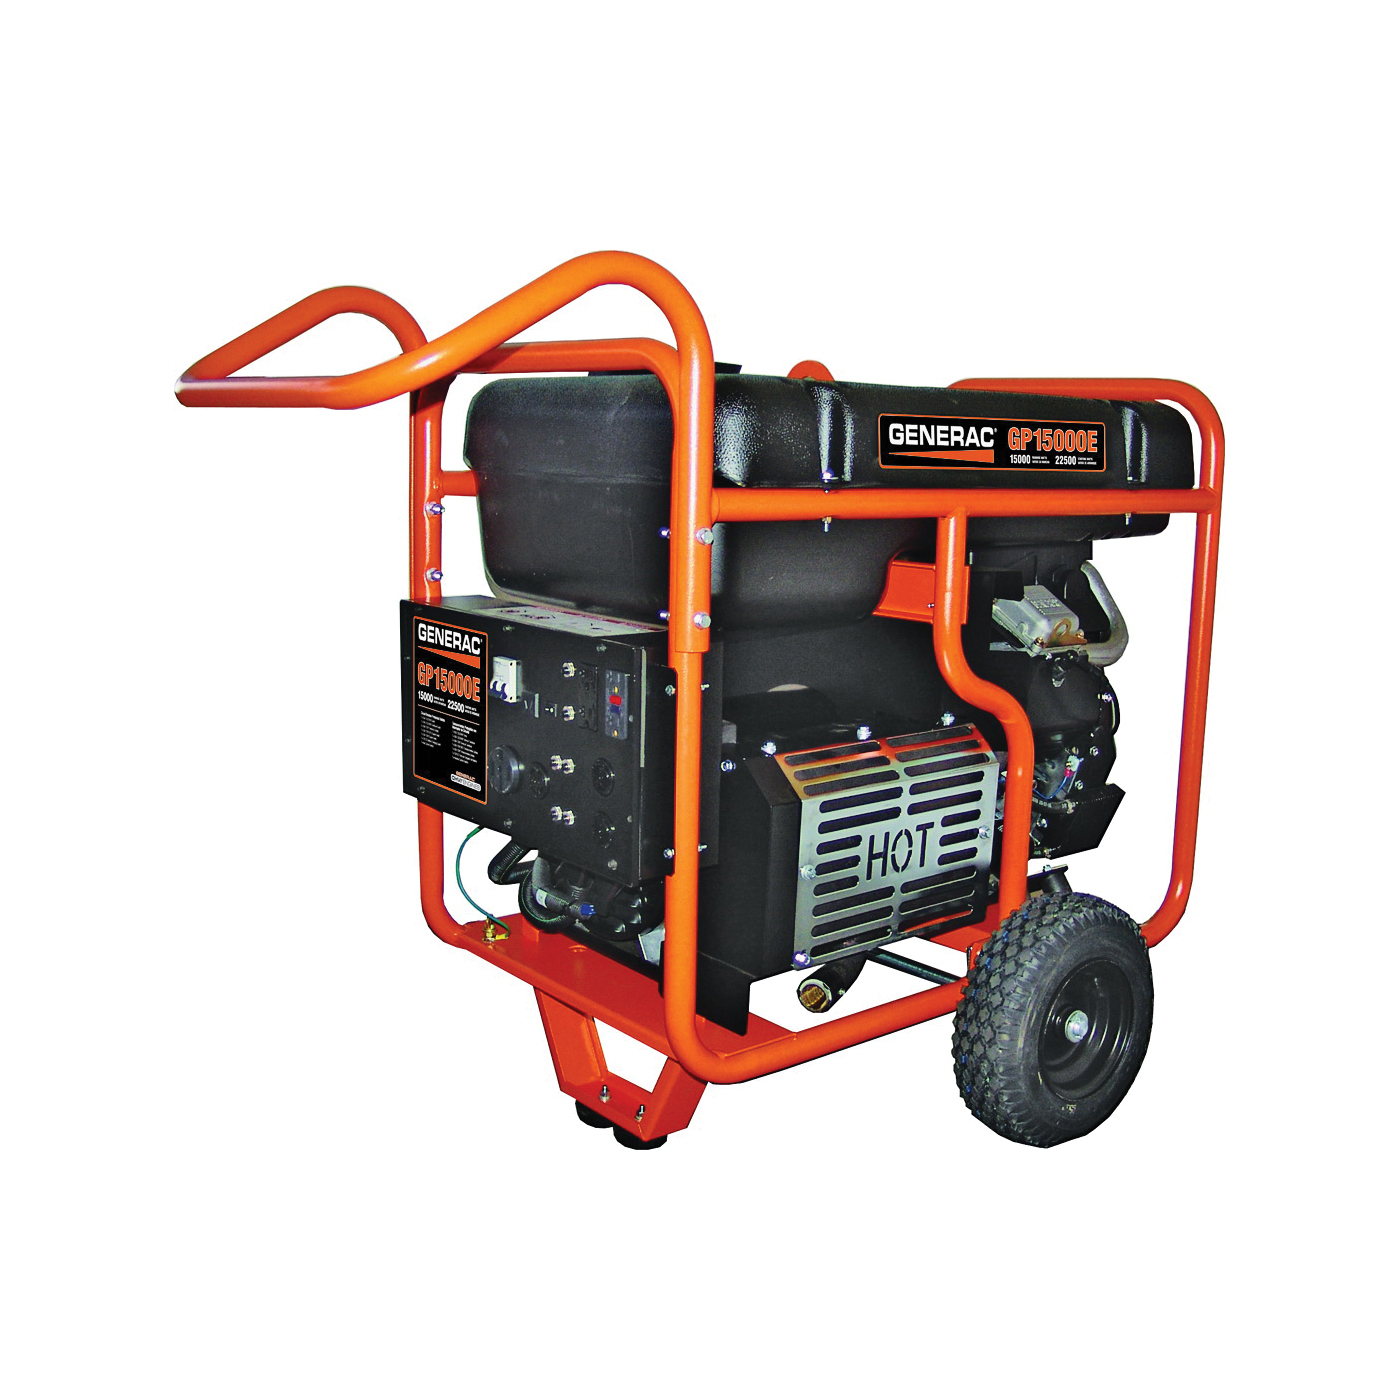 Picture of GENERAC 5734 Portable Generator, 125/62.5 A, 120/240 V, Gas, 16 gal Tank, 10 hr Run Time, Electric Start